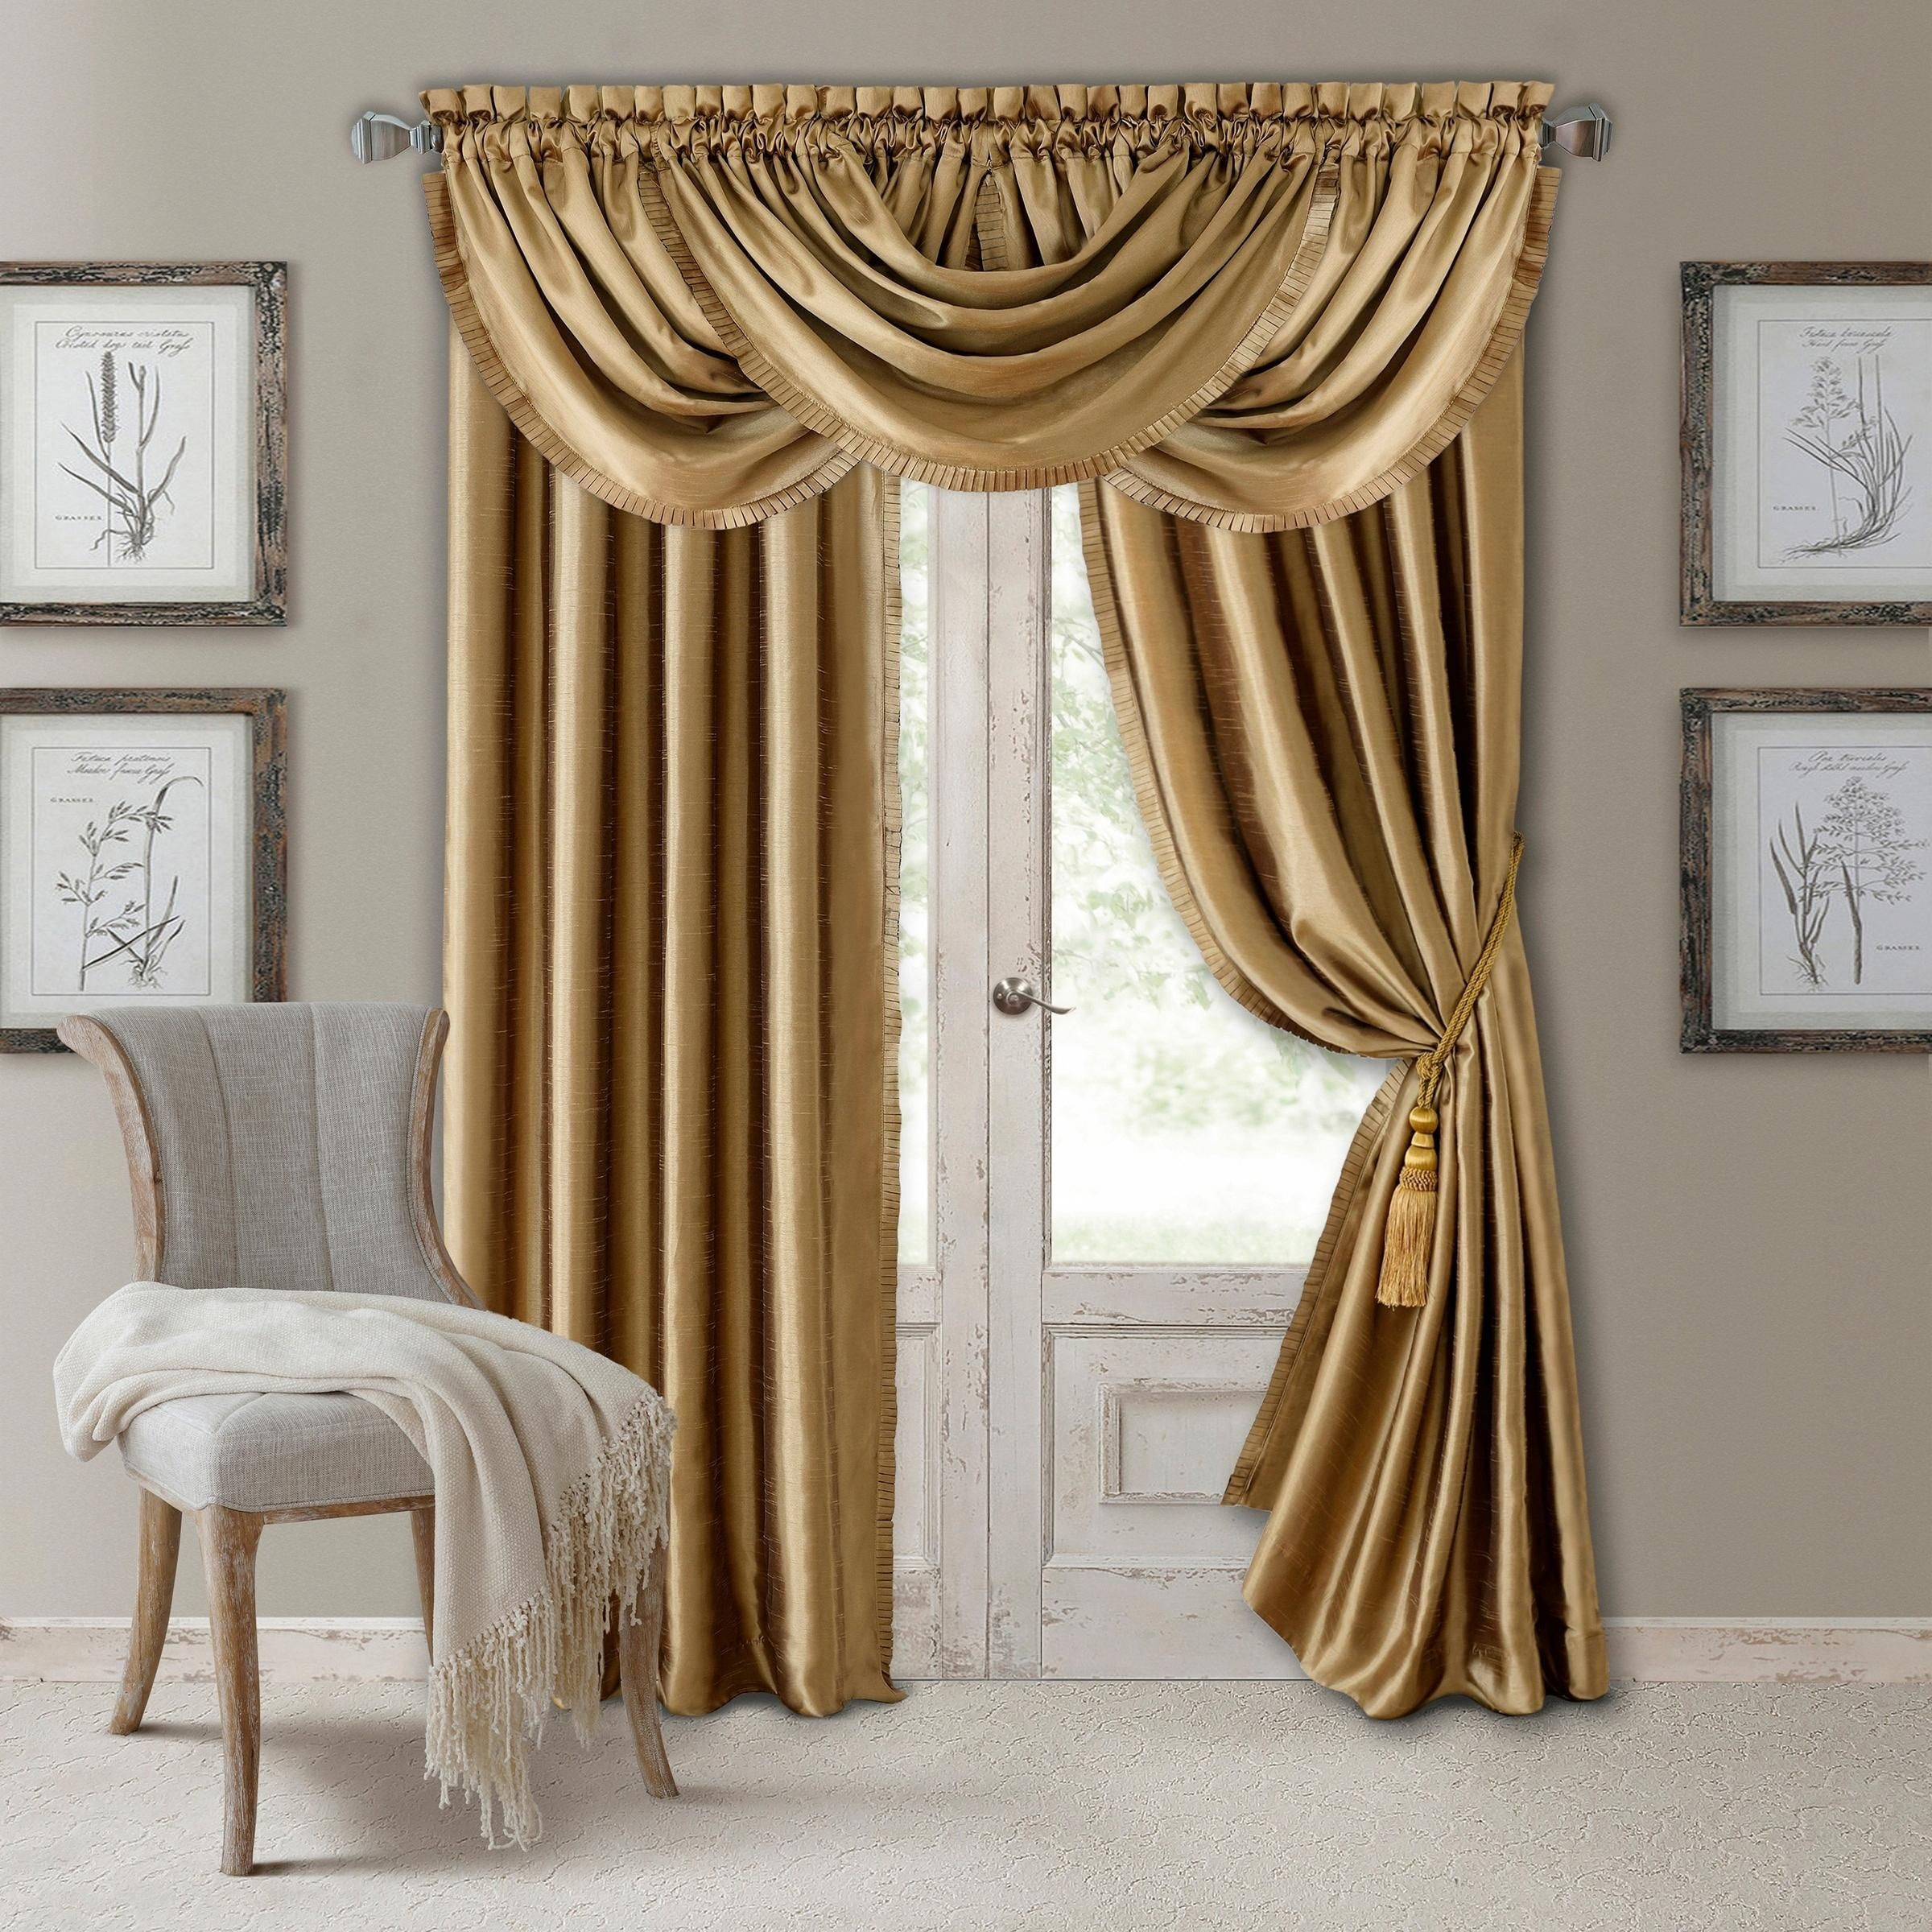 36 Inch Room Darkening Curtains Elrene Versailles Waterfall Blue Window Valance Gold 52